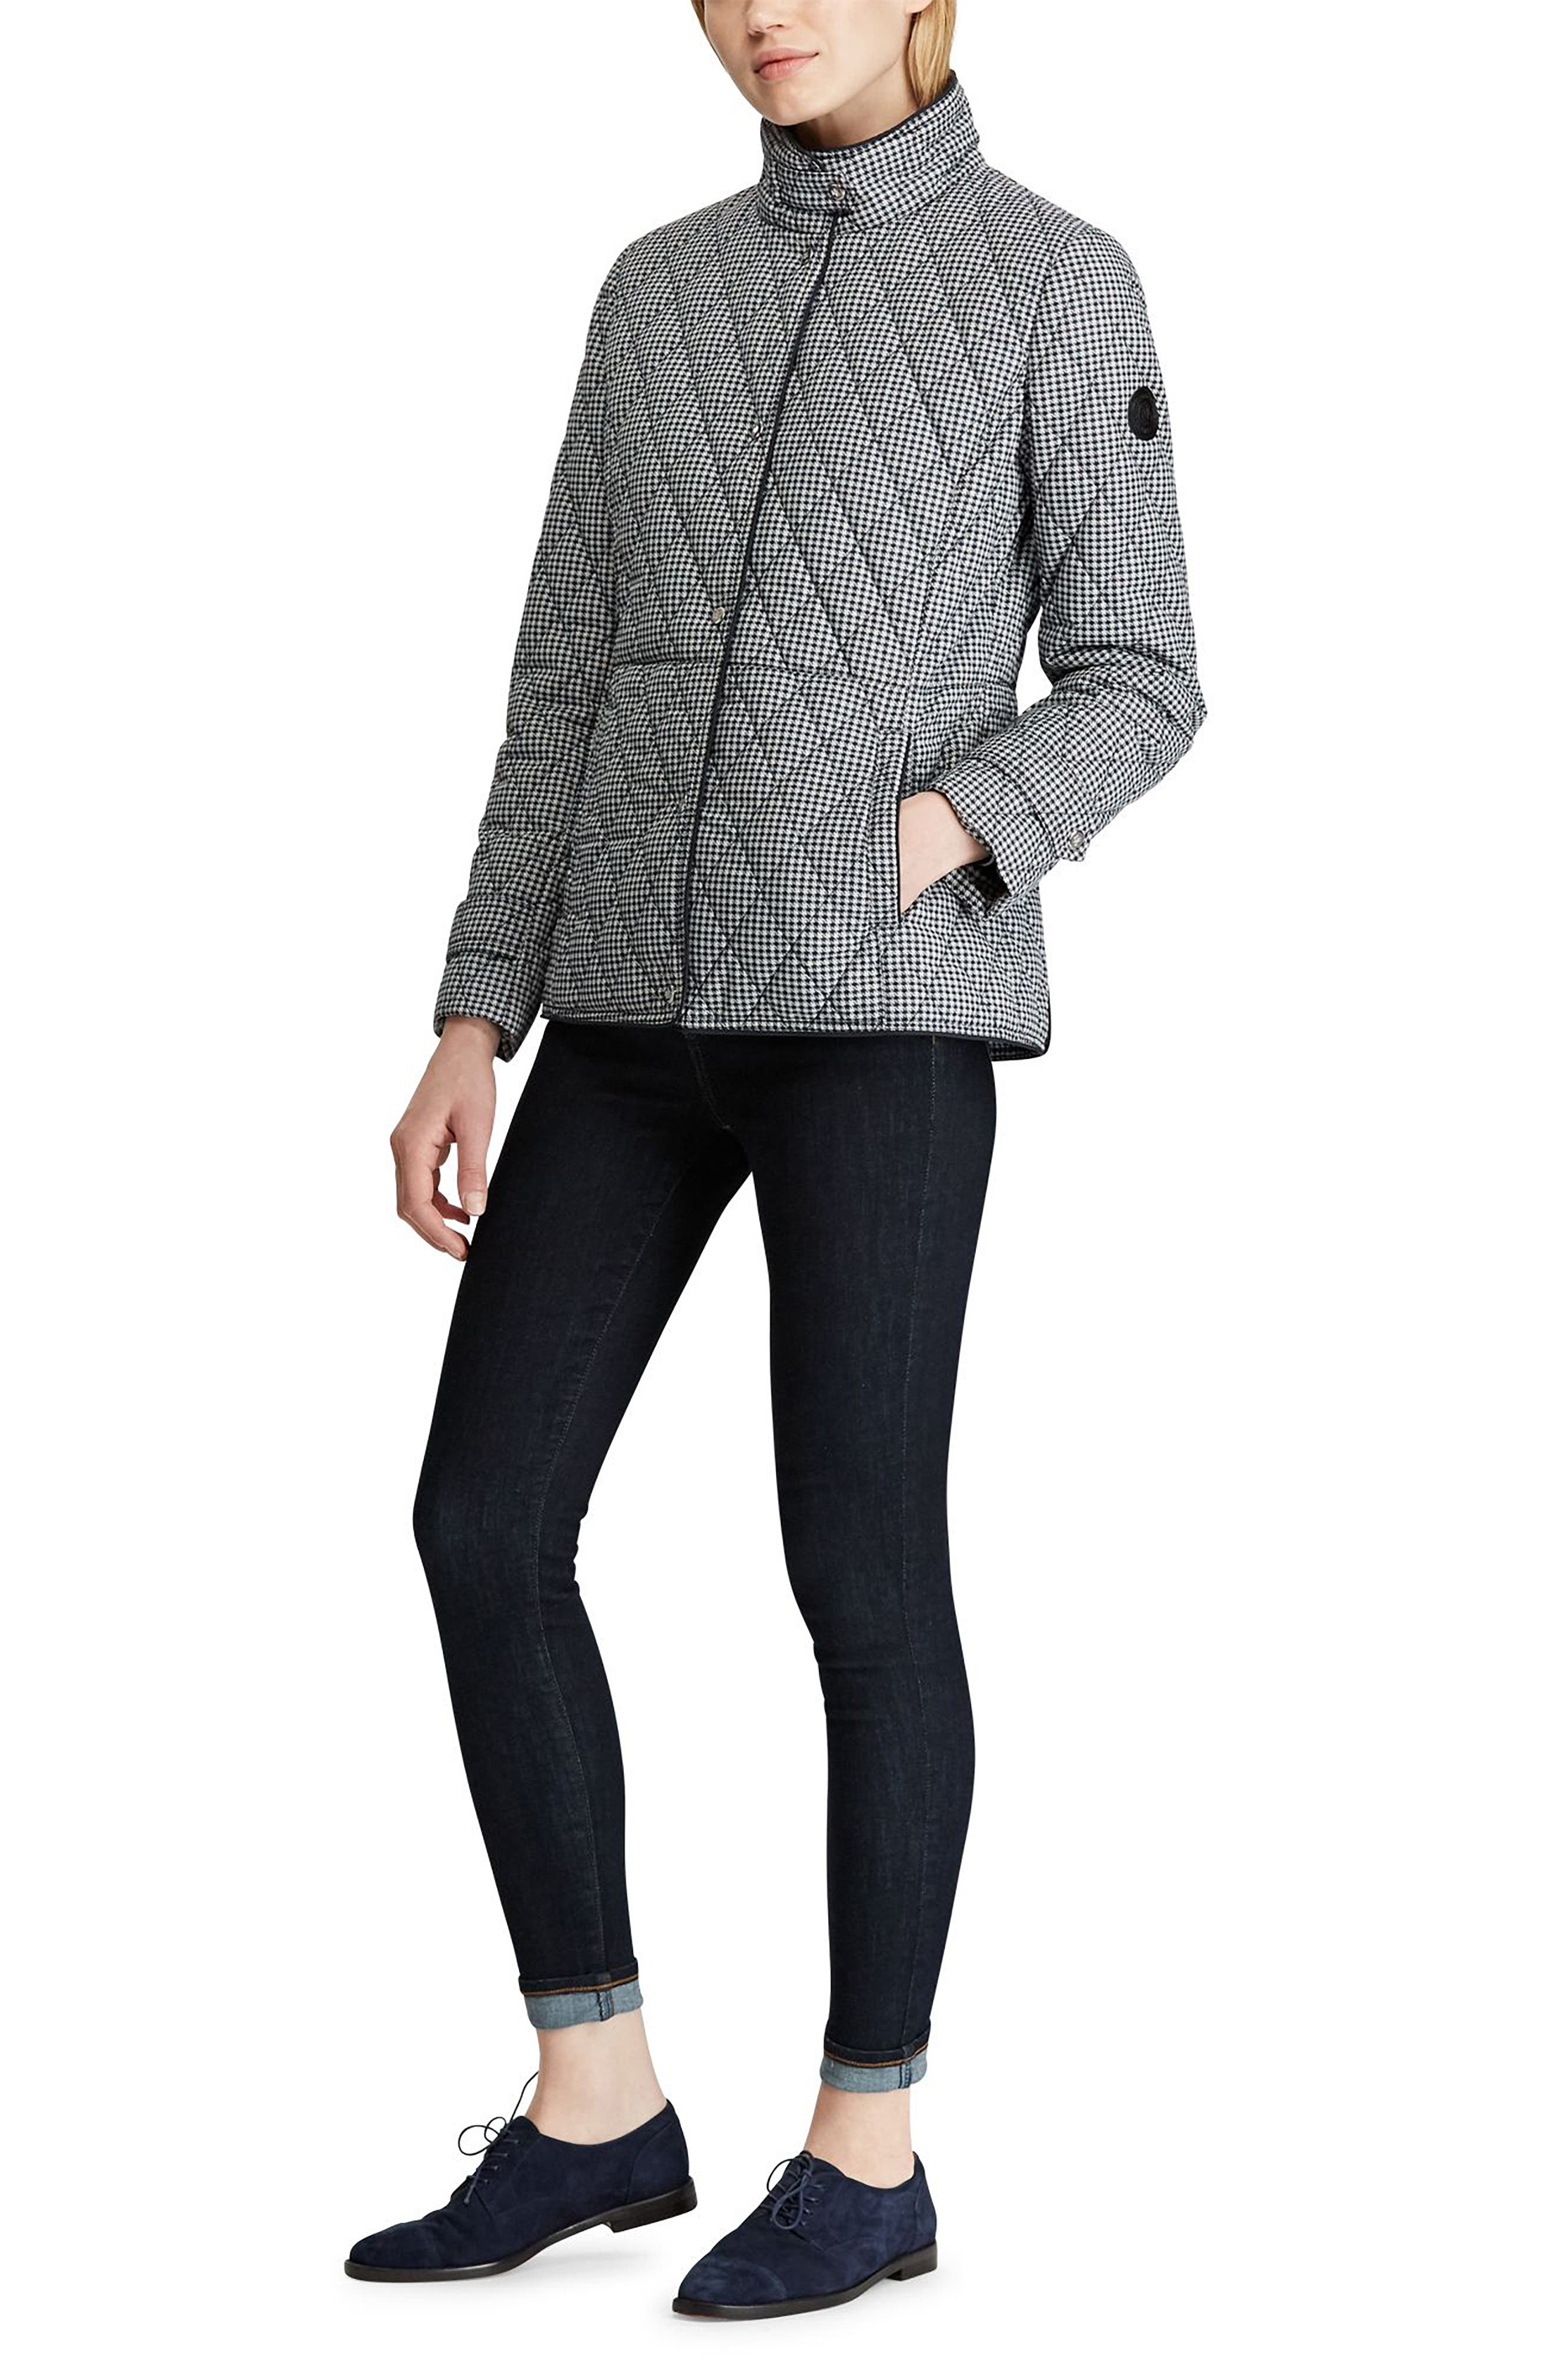 LAUREN RALPH LAUREN, Houndstooth Quilted Military Jacket, Alternate thumbnail 5, color, DK NAVY HOUNDSTOOTH